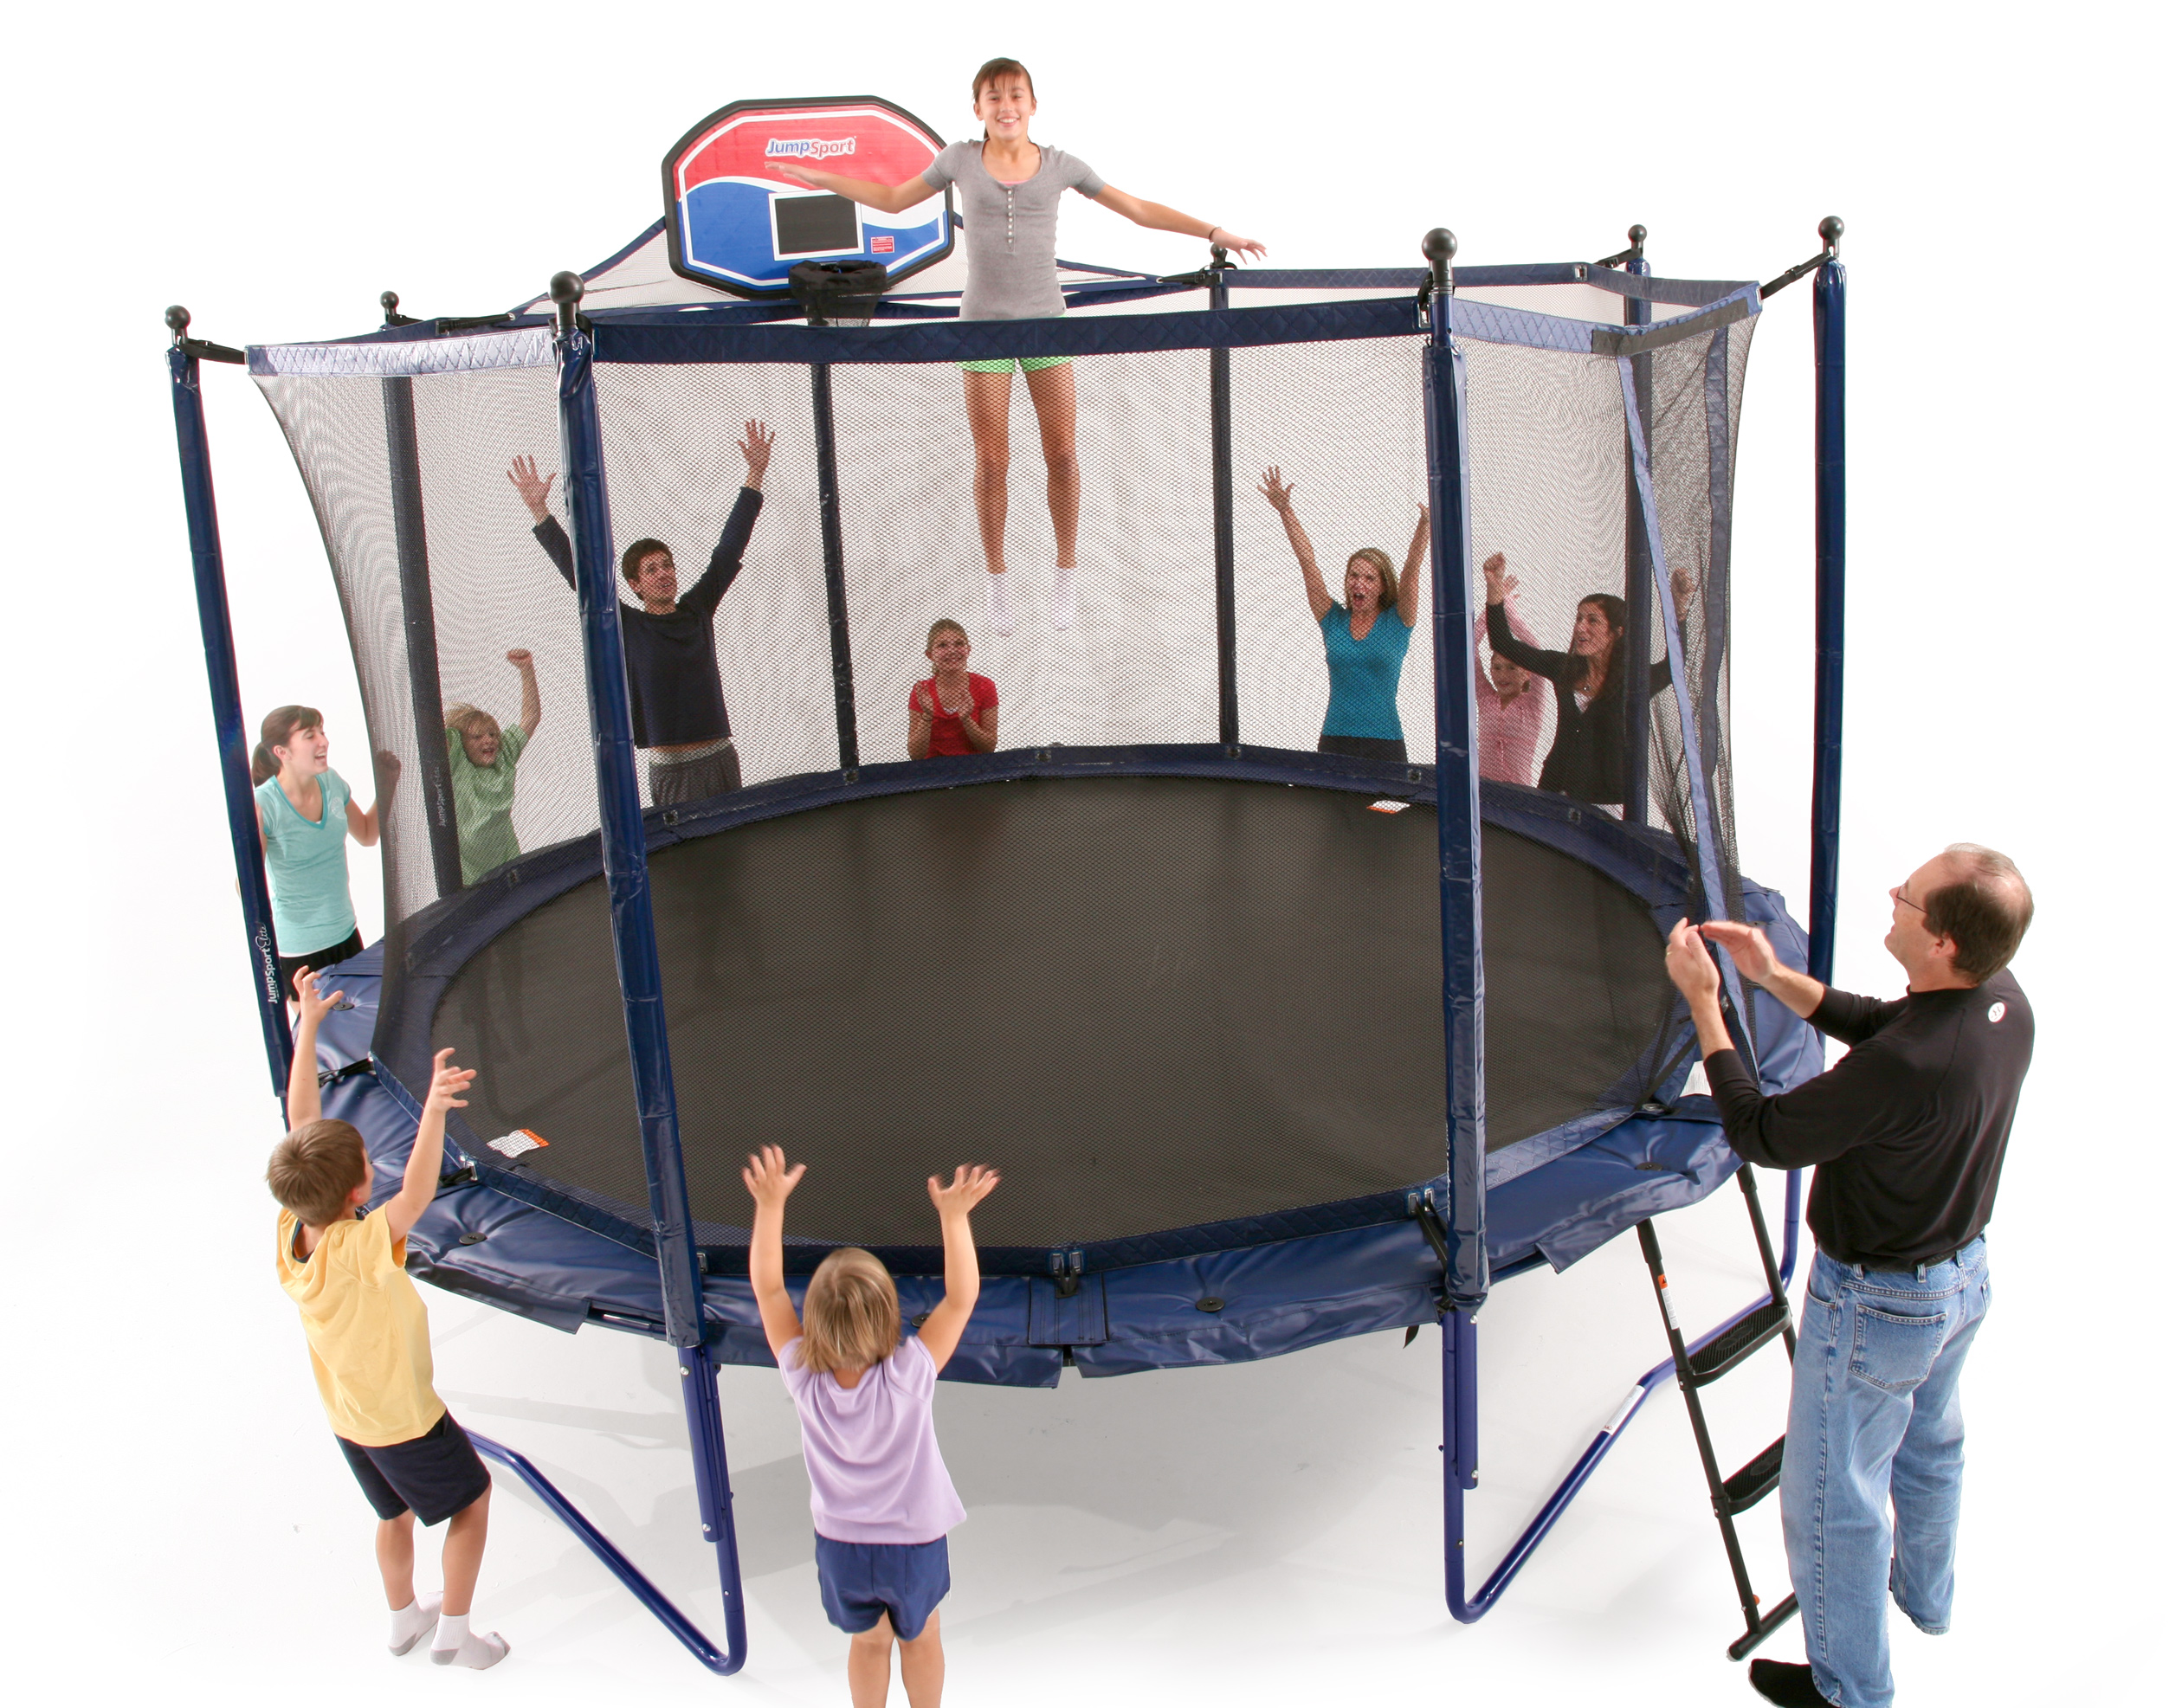 jumpsport elite js elite 14 powerbounce system with enclosure v1 trampoline 0 0 JumpSport Elite 14 ft PowerBounce Trampoline and Enclosure